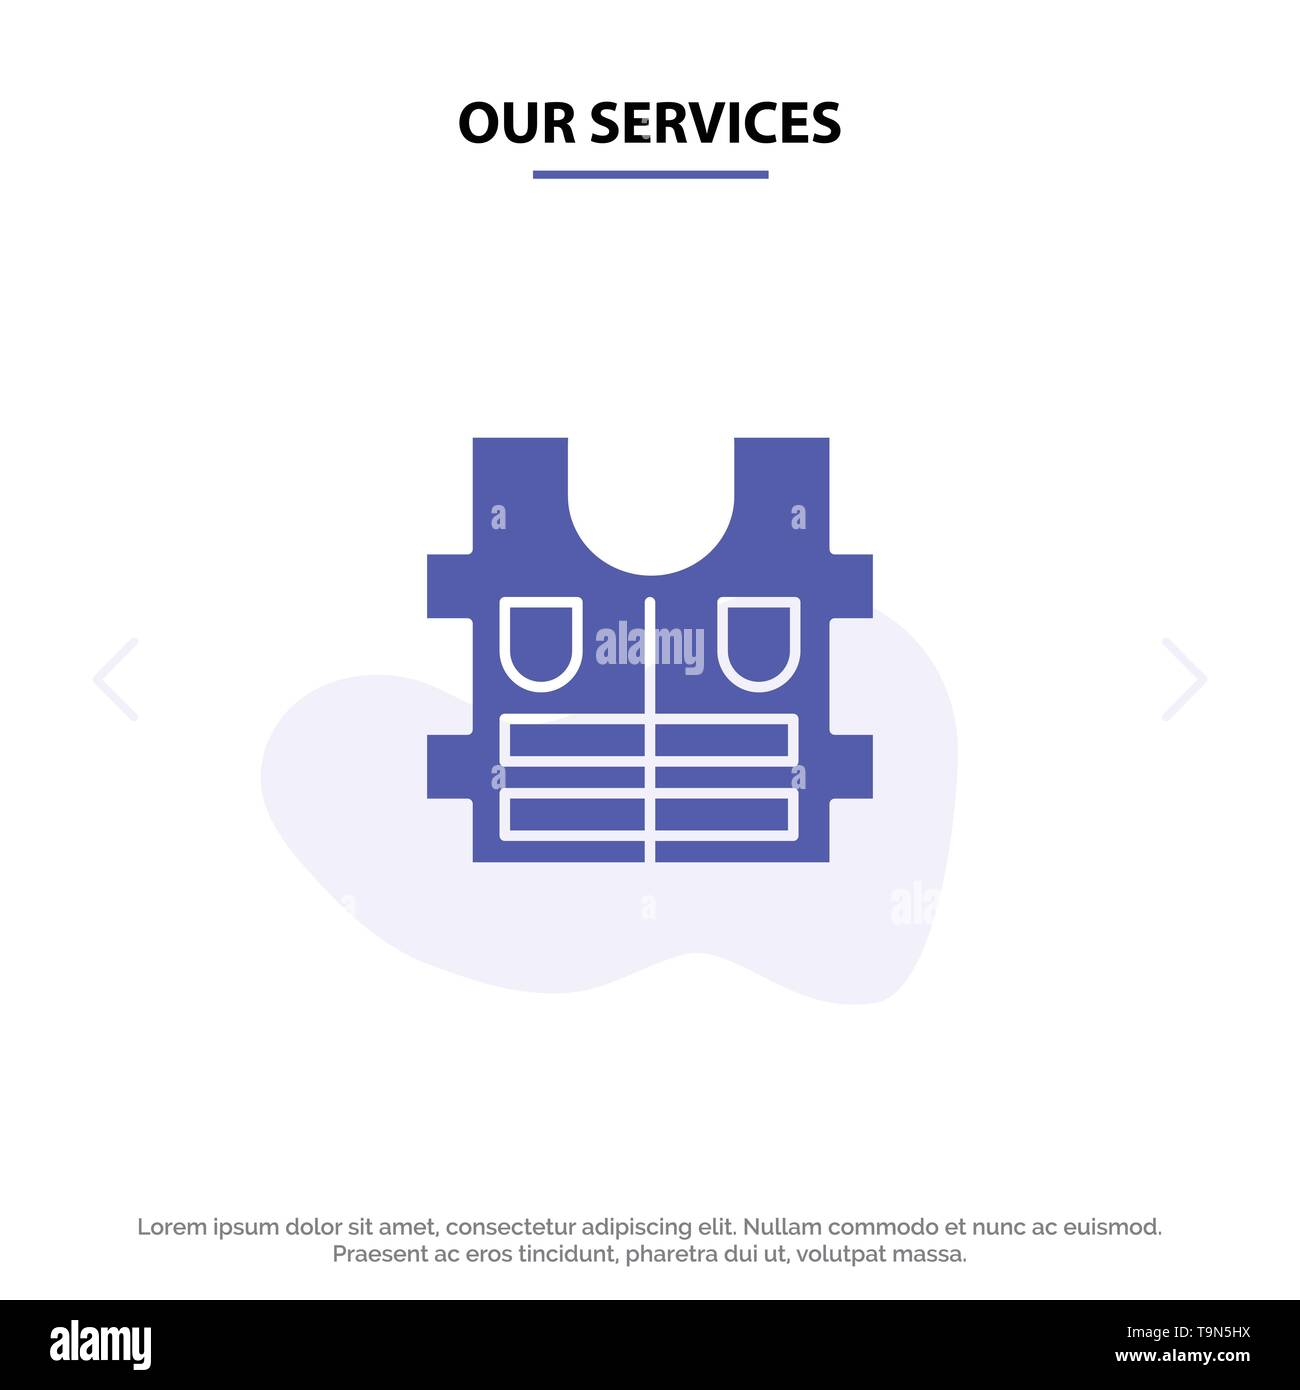 Our Services Jacket, Life, Safety Solid Glyph Icon Web card Template - Stock Image